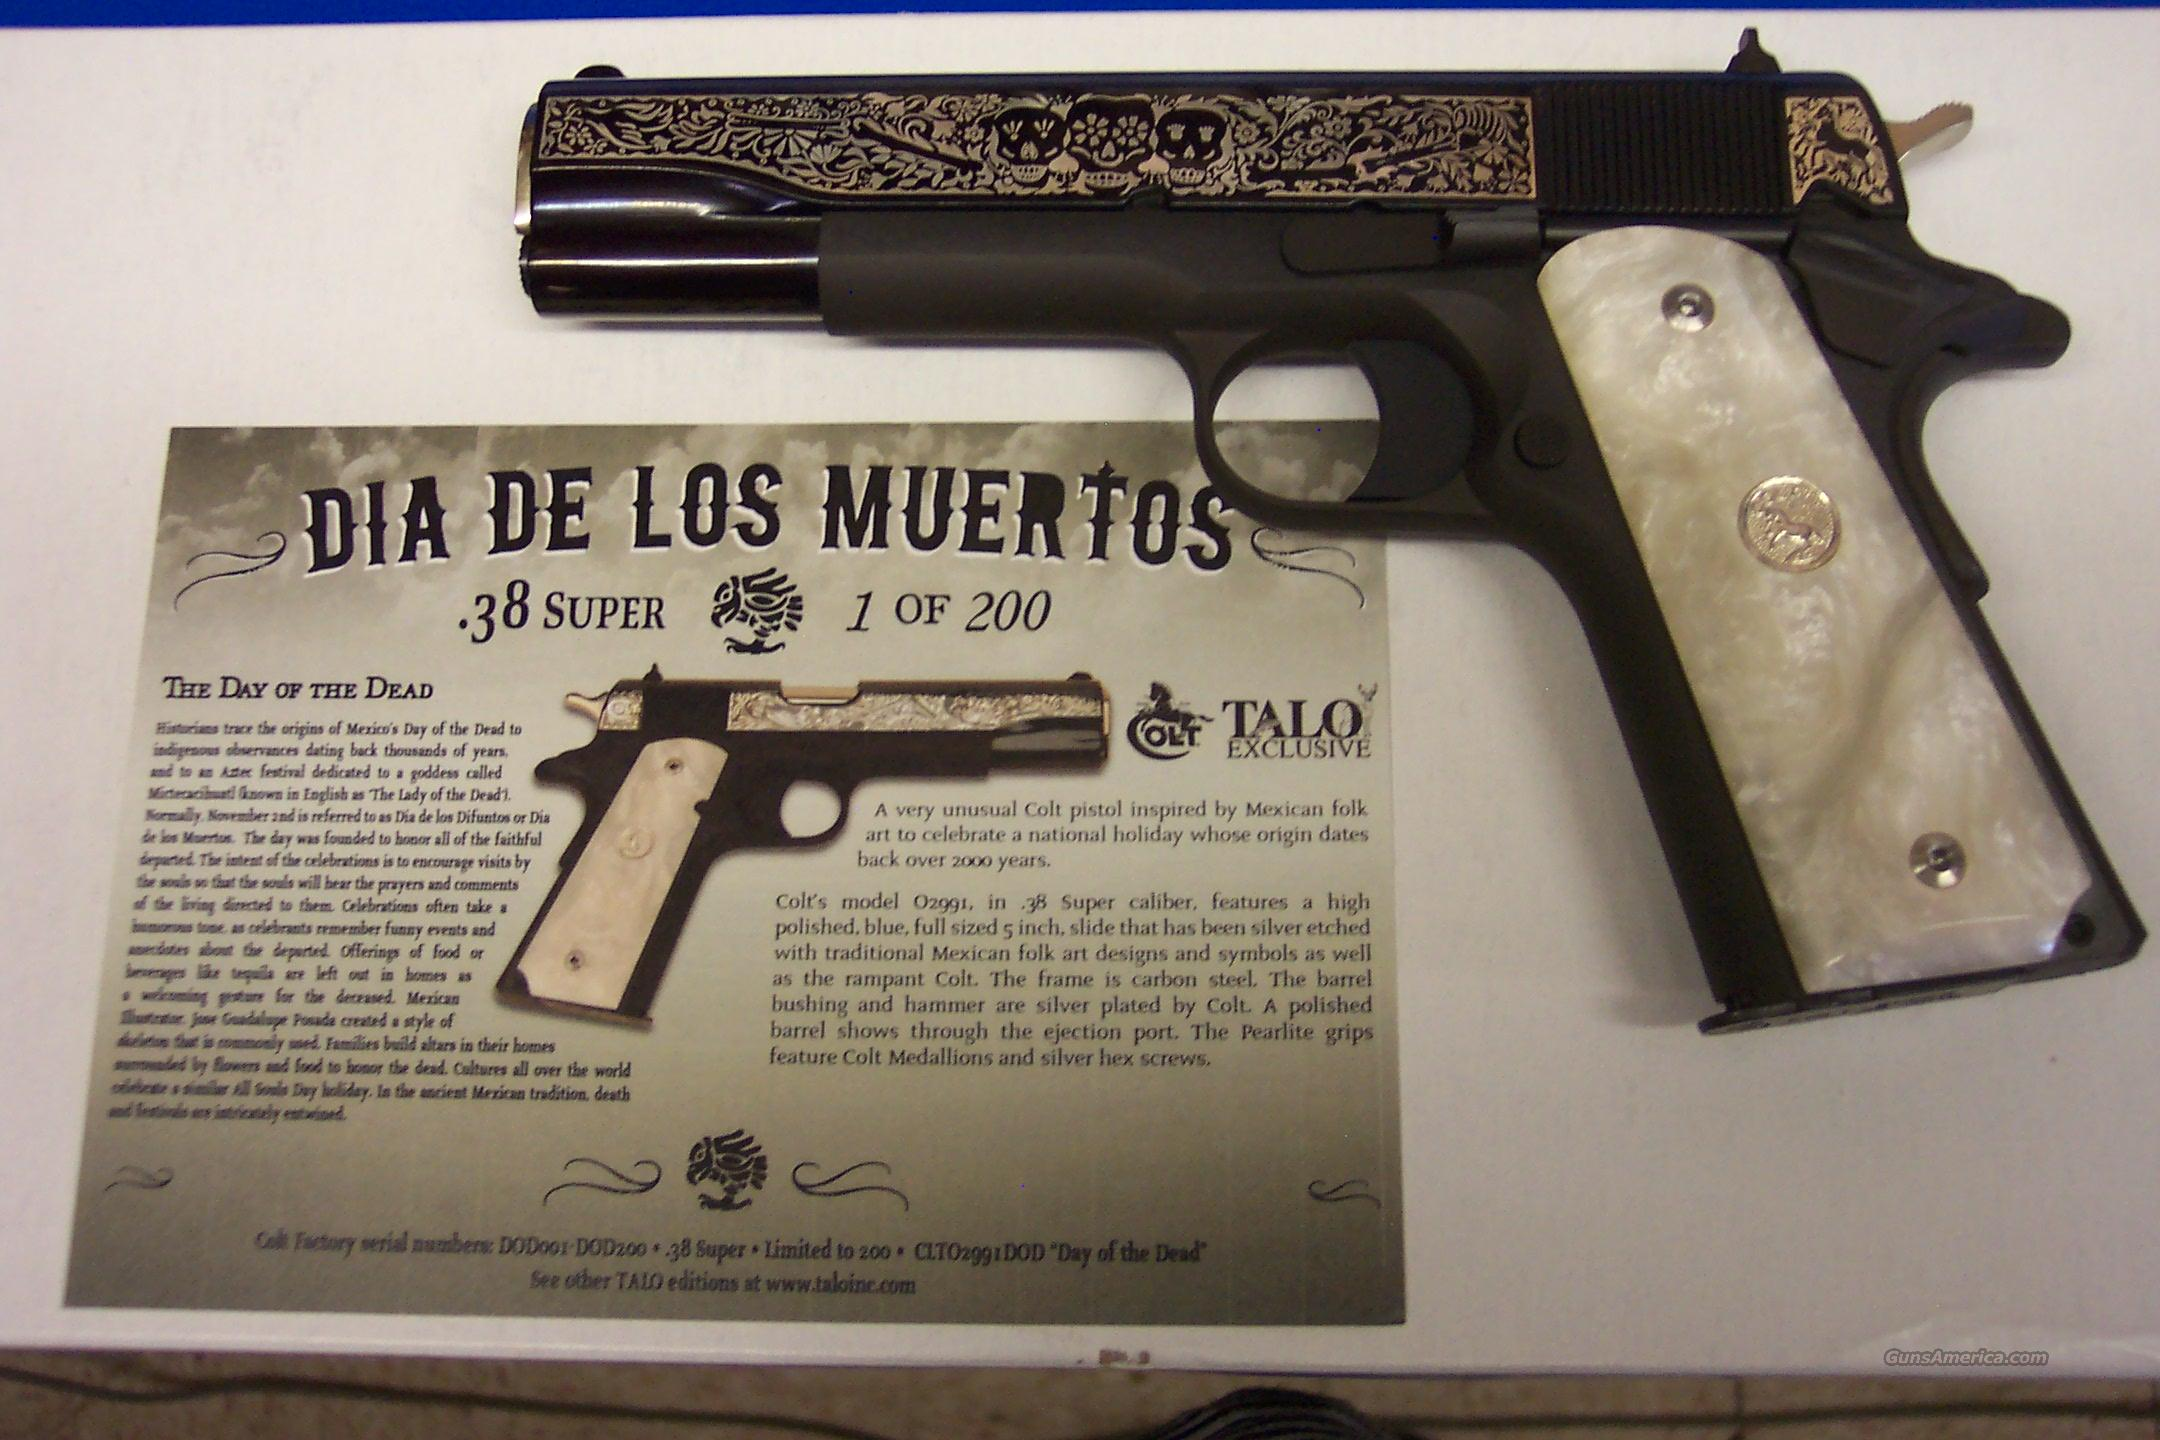 Colt 38 Super Quot Dia De Los Muertos Quot Day Of The For Sale